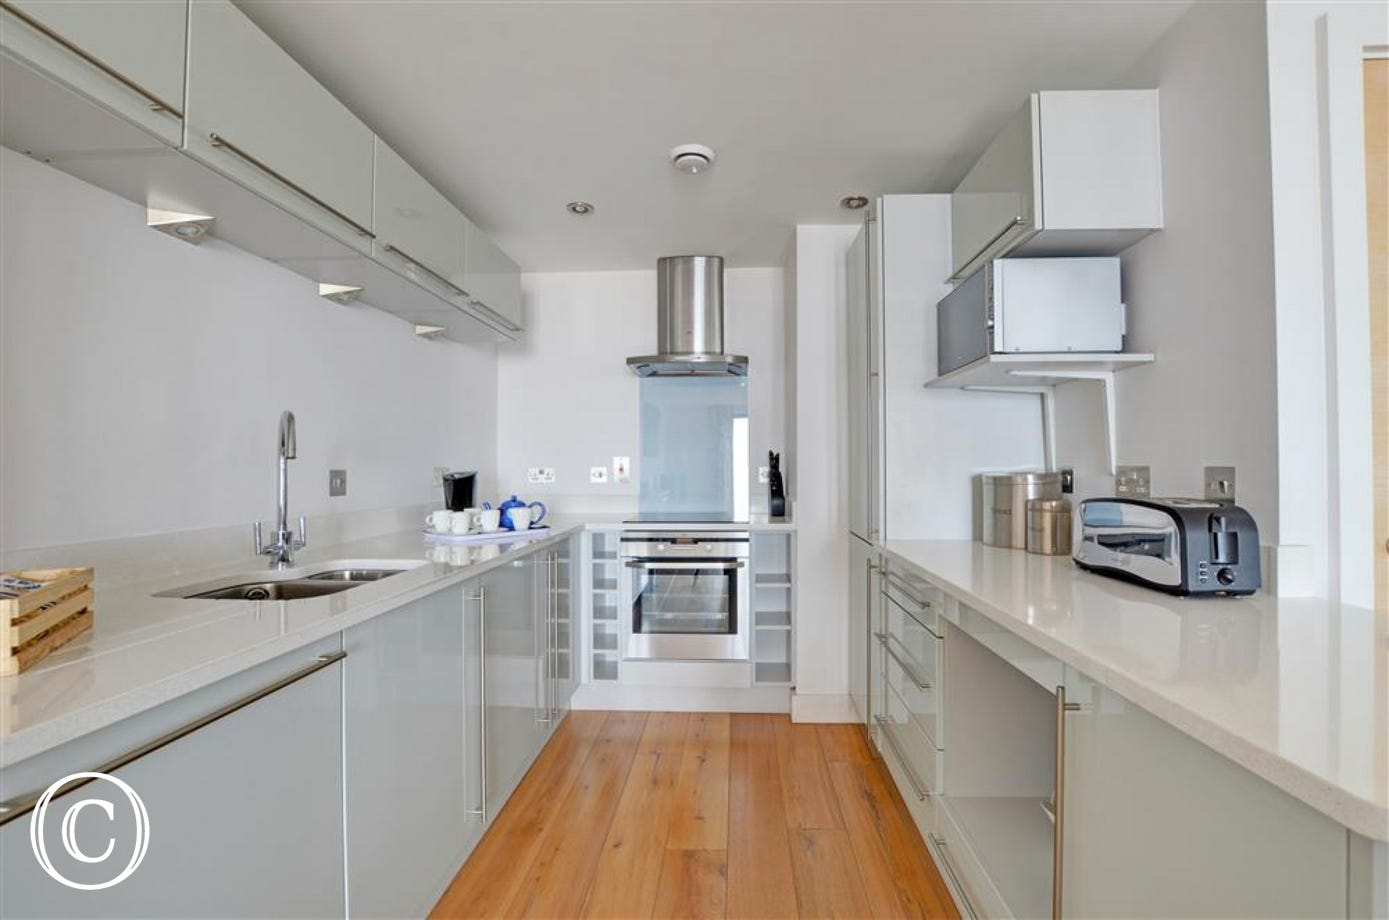 Fantastic modern kitchen with everything you need for your holiday